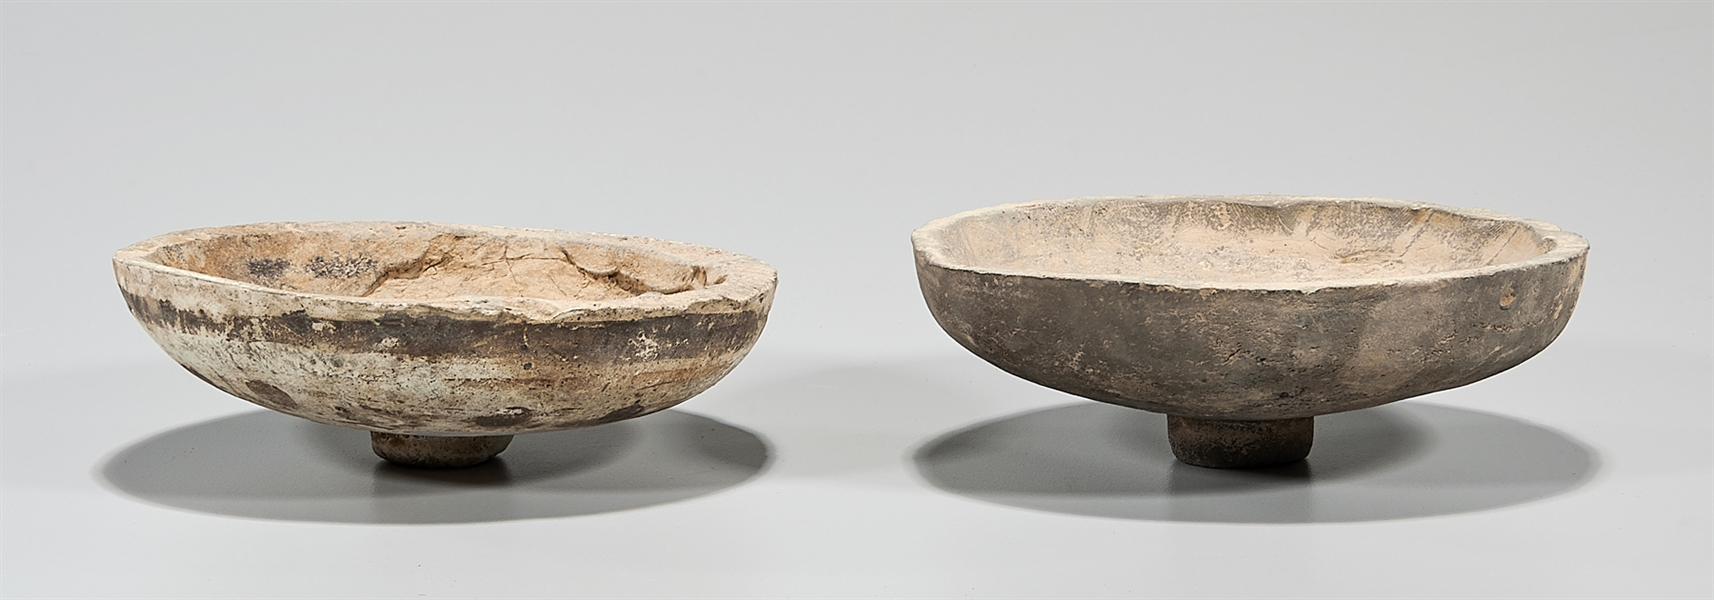 Pair of Chinese Pottery Footed Bowls